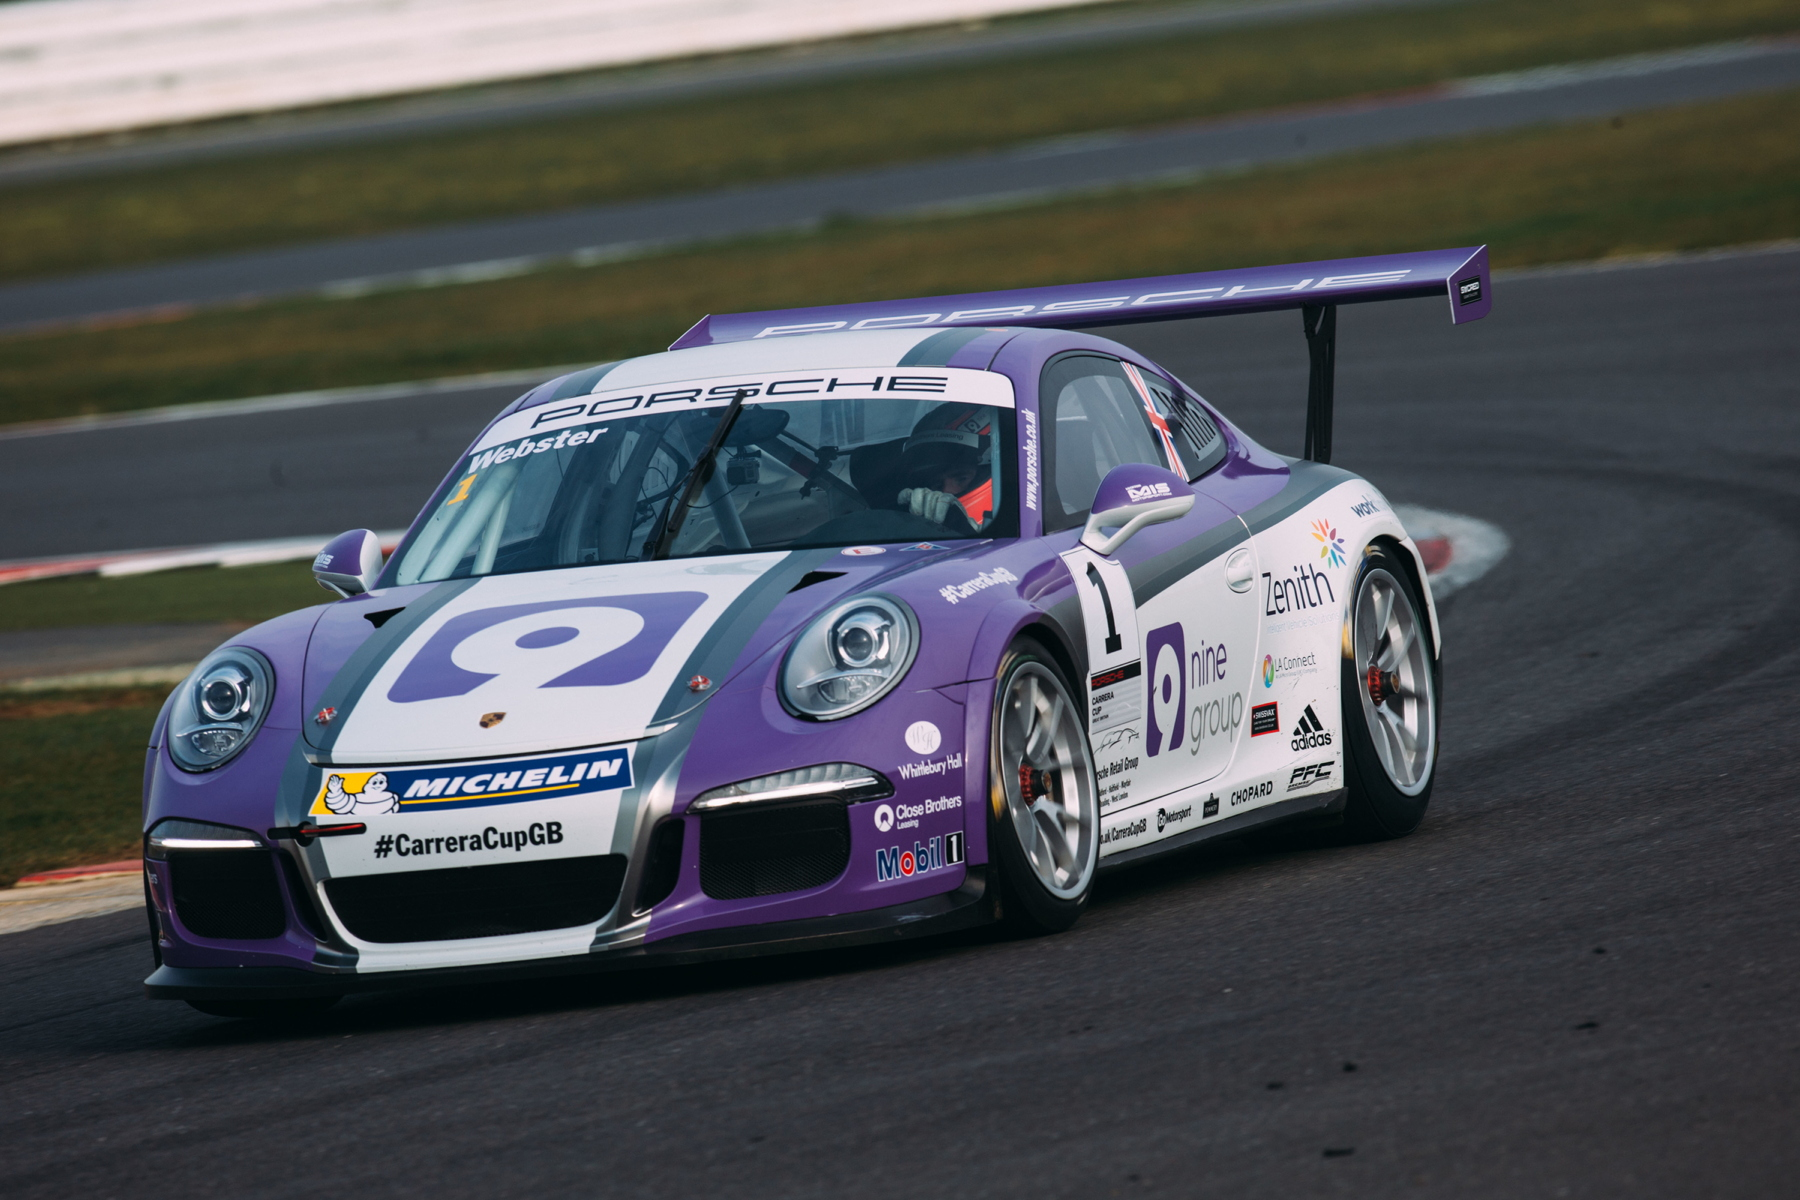 A number of Carrera Cup GB stars, including 2014 champion, Josh Webster will join the Supercup field at Silverstone.